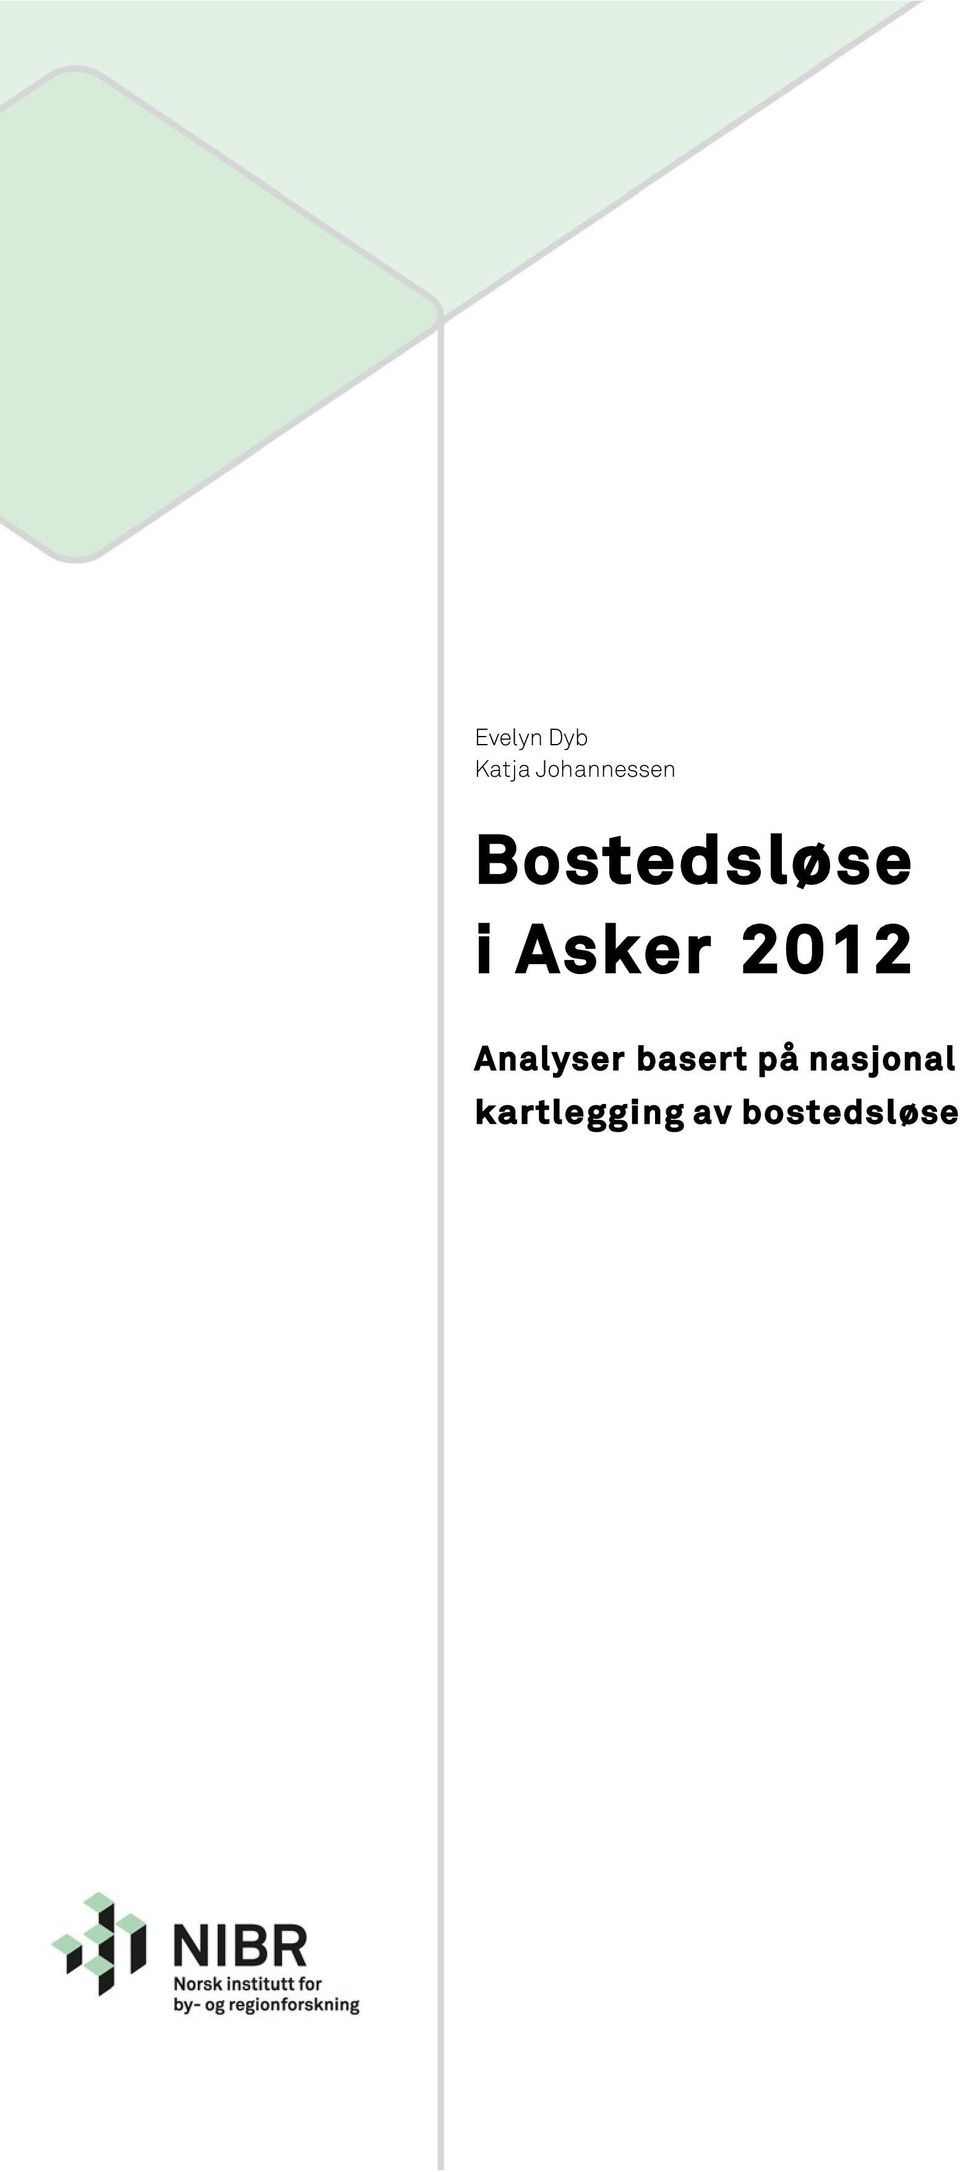 Asker 2012 Analyser basert